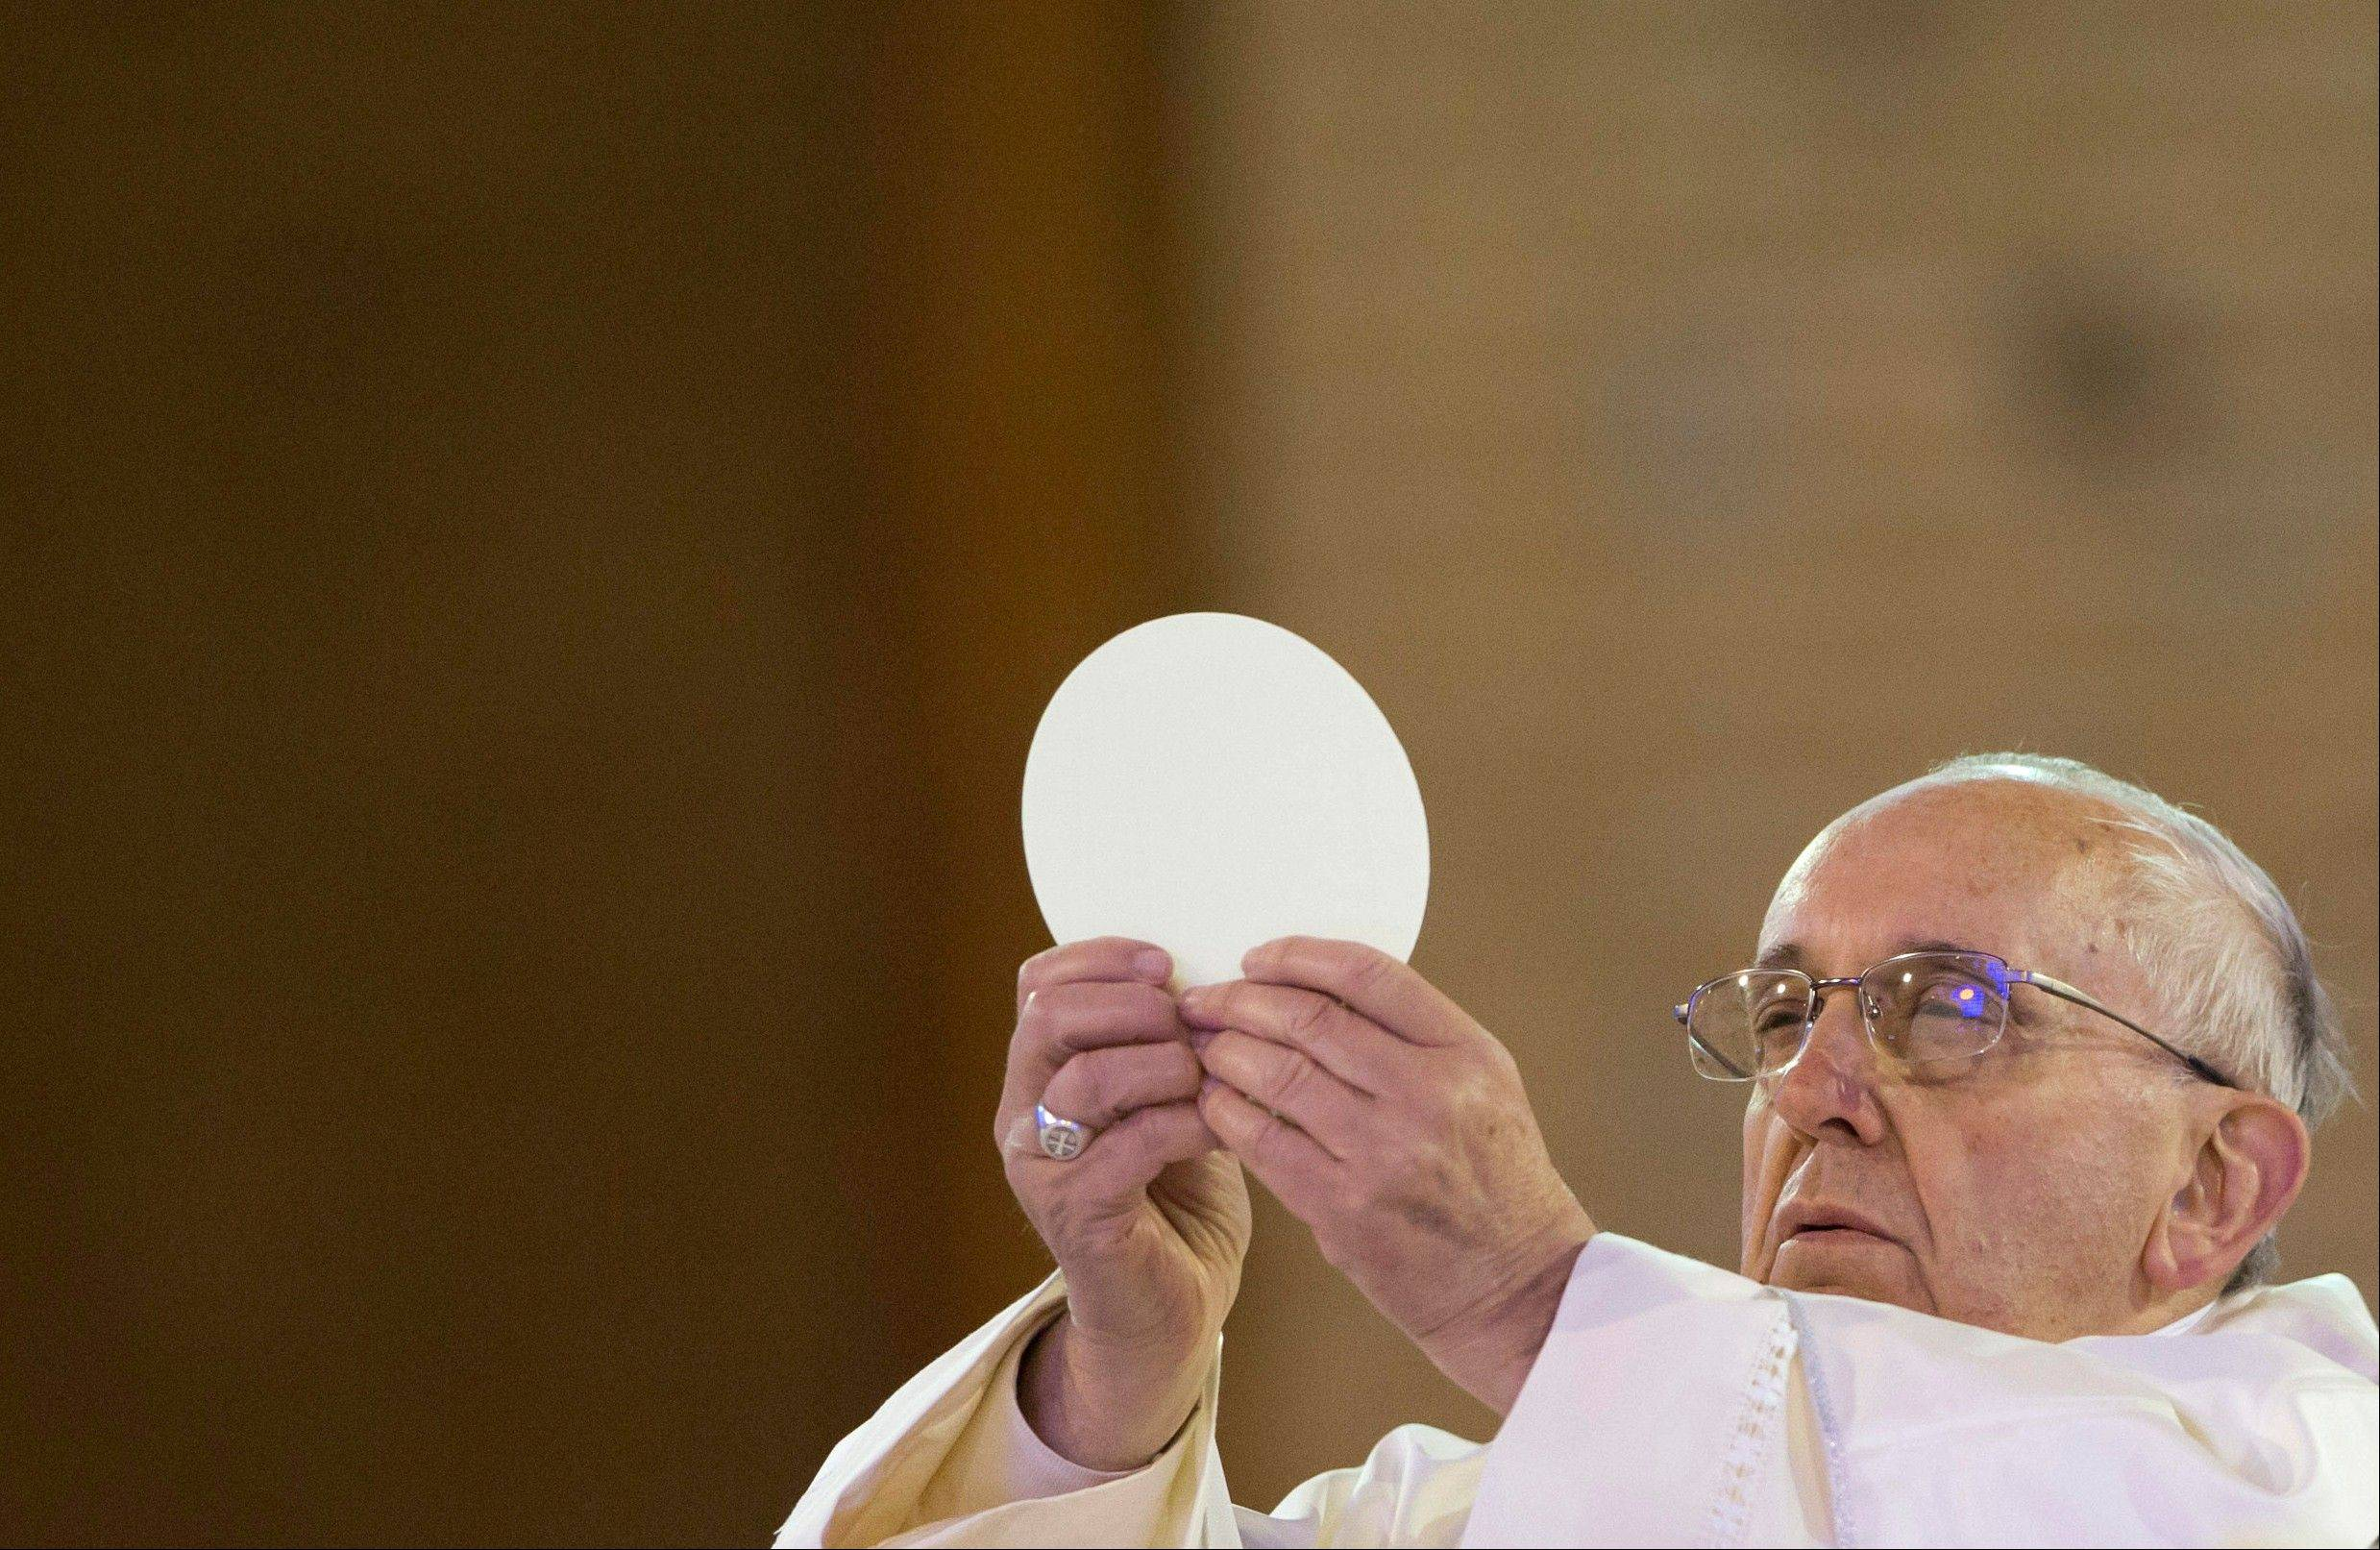 Pope Francis holds up the Eucharist as he gives Mass inside Aparecida Basilica in Aparecida, Brazil, Wednesday, July 24, 2013.